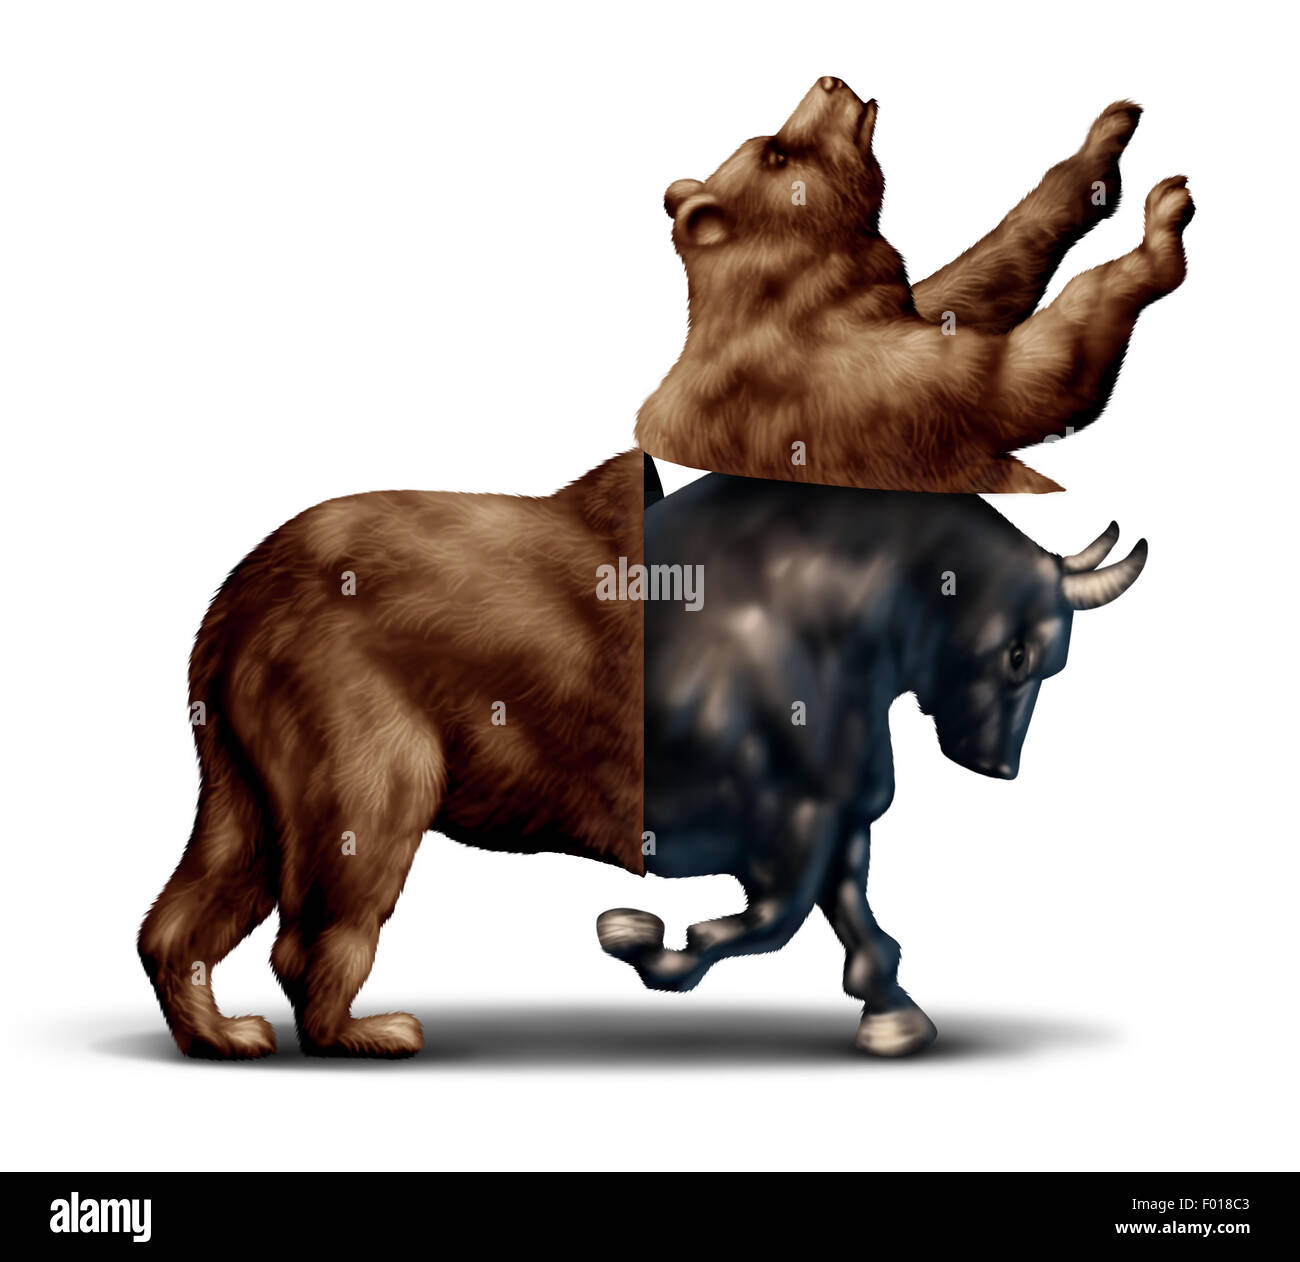 Bull market economic recovery financial business concept as a bear opening up and revealing an emerging bullish - Stock Image